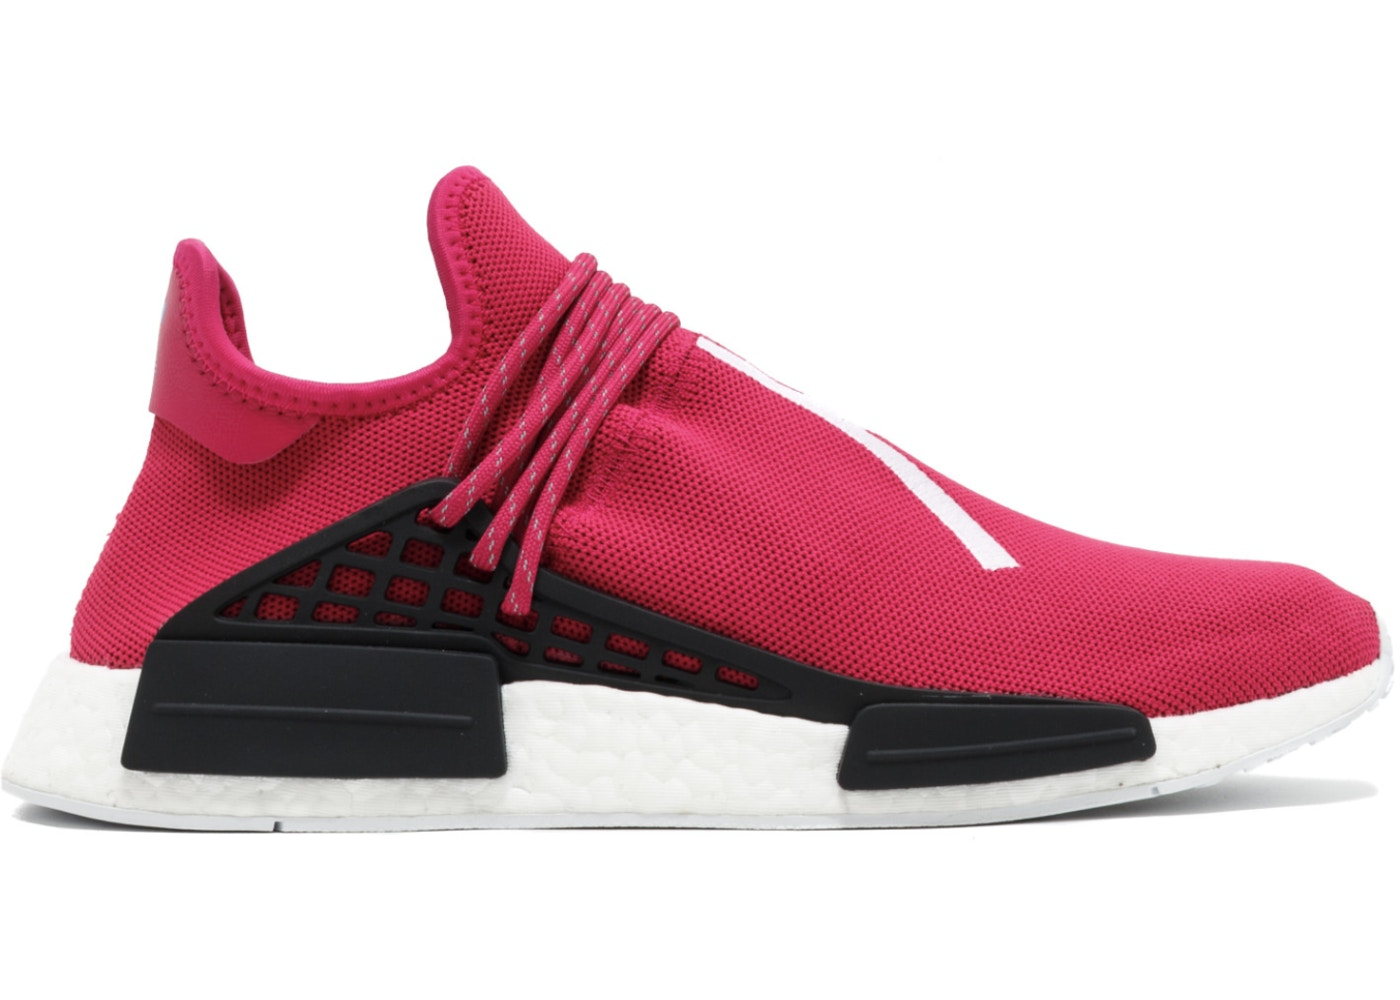 on sale 5a2f0 363ad adidas NMD HU Pharrell Friends and Family Pink